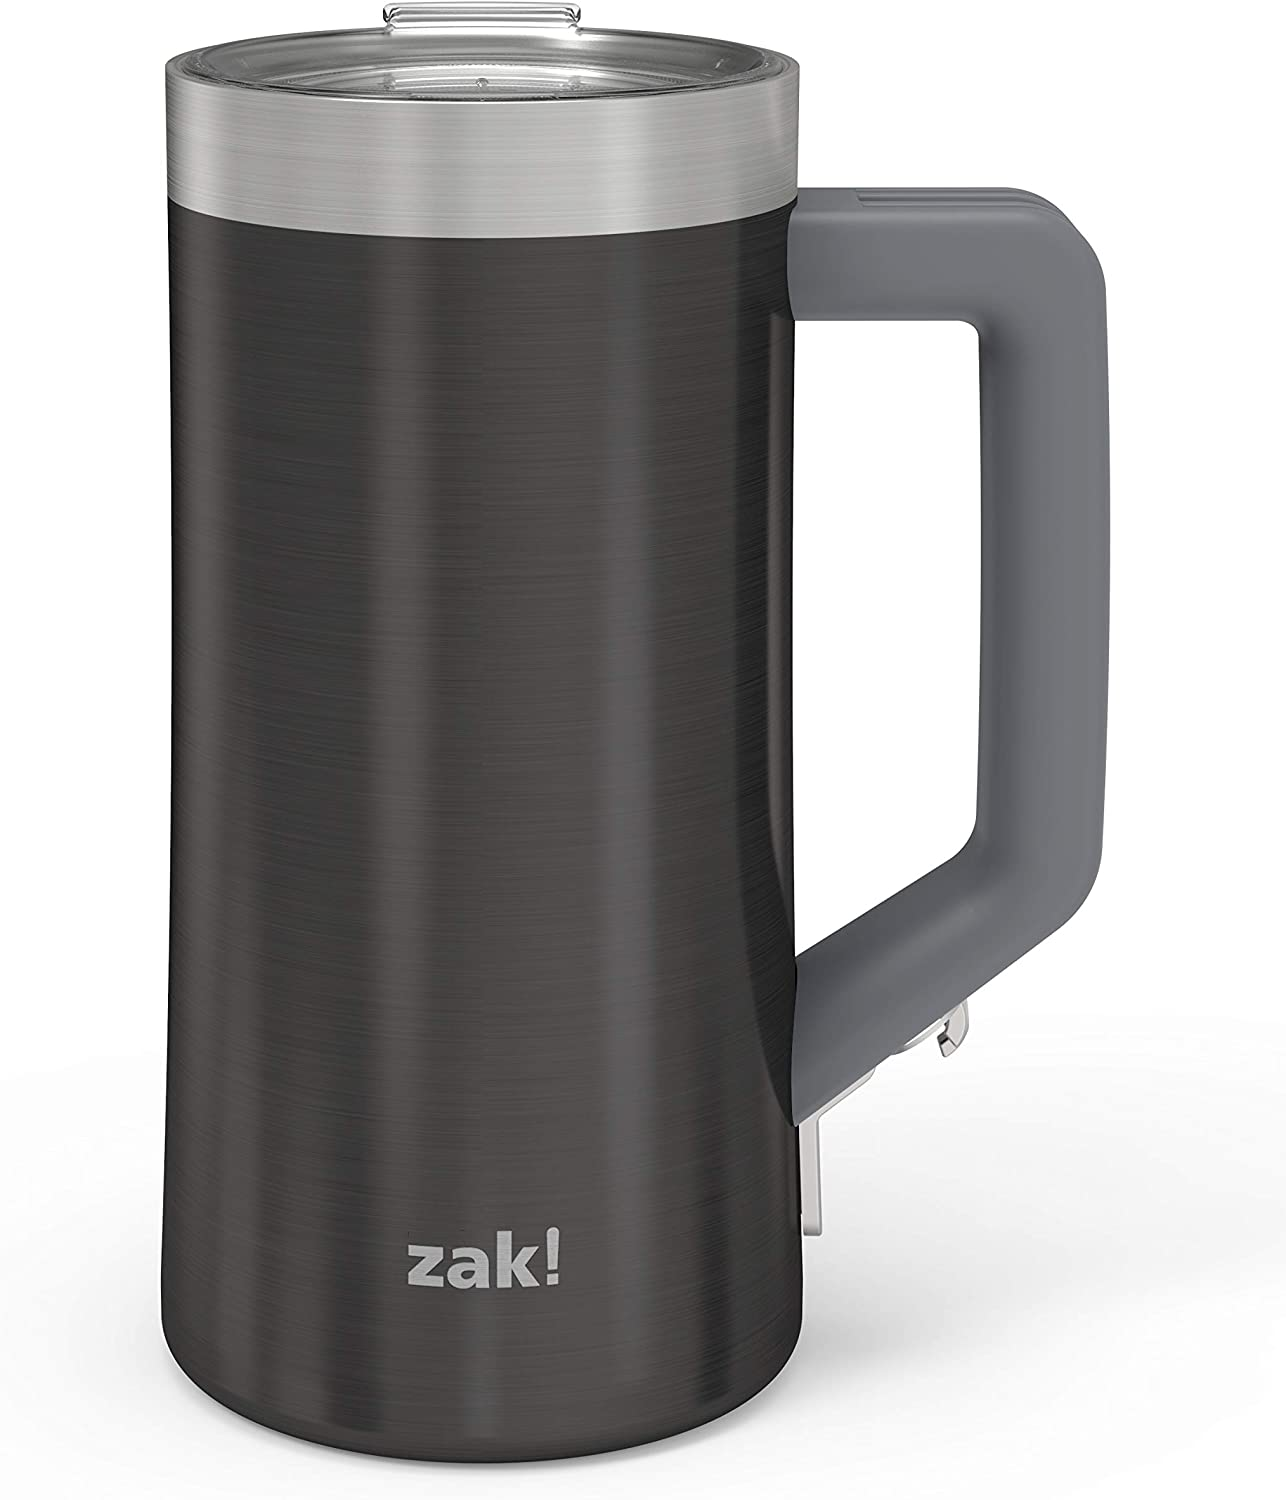 Zak Designs Creston Vacuum Insulated Stainless Steel Stein Mug with Press-In Lid and Splash-Proof Design, Includes Built-In Bottle Opener, Perfect for Indoor/Outdoor Activity (25oz, Black, BPA Free)